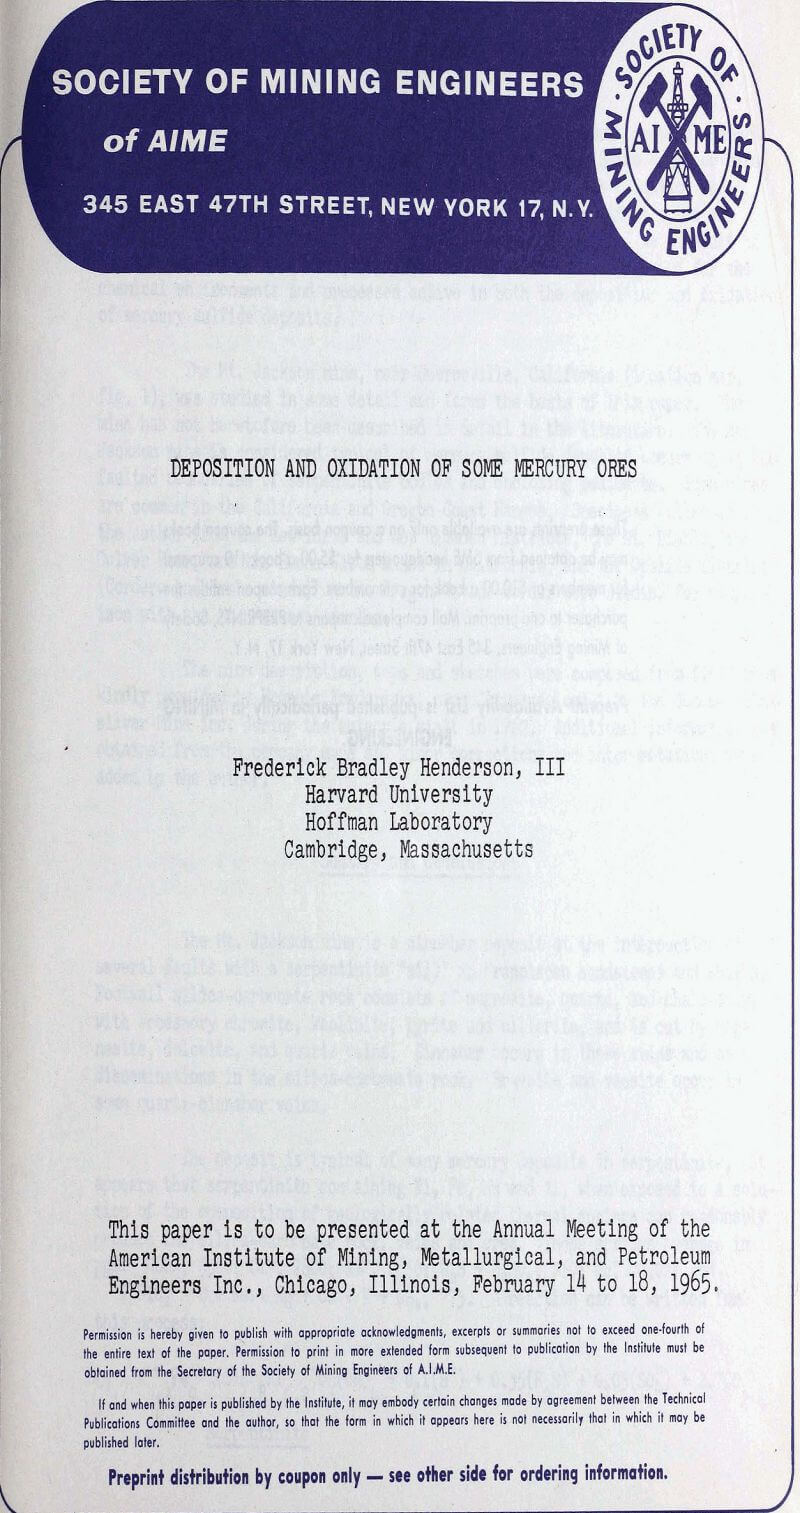 deposition and oxidation of some mercury ores